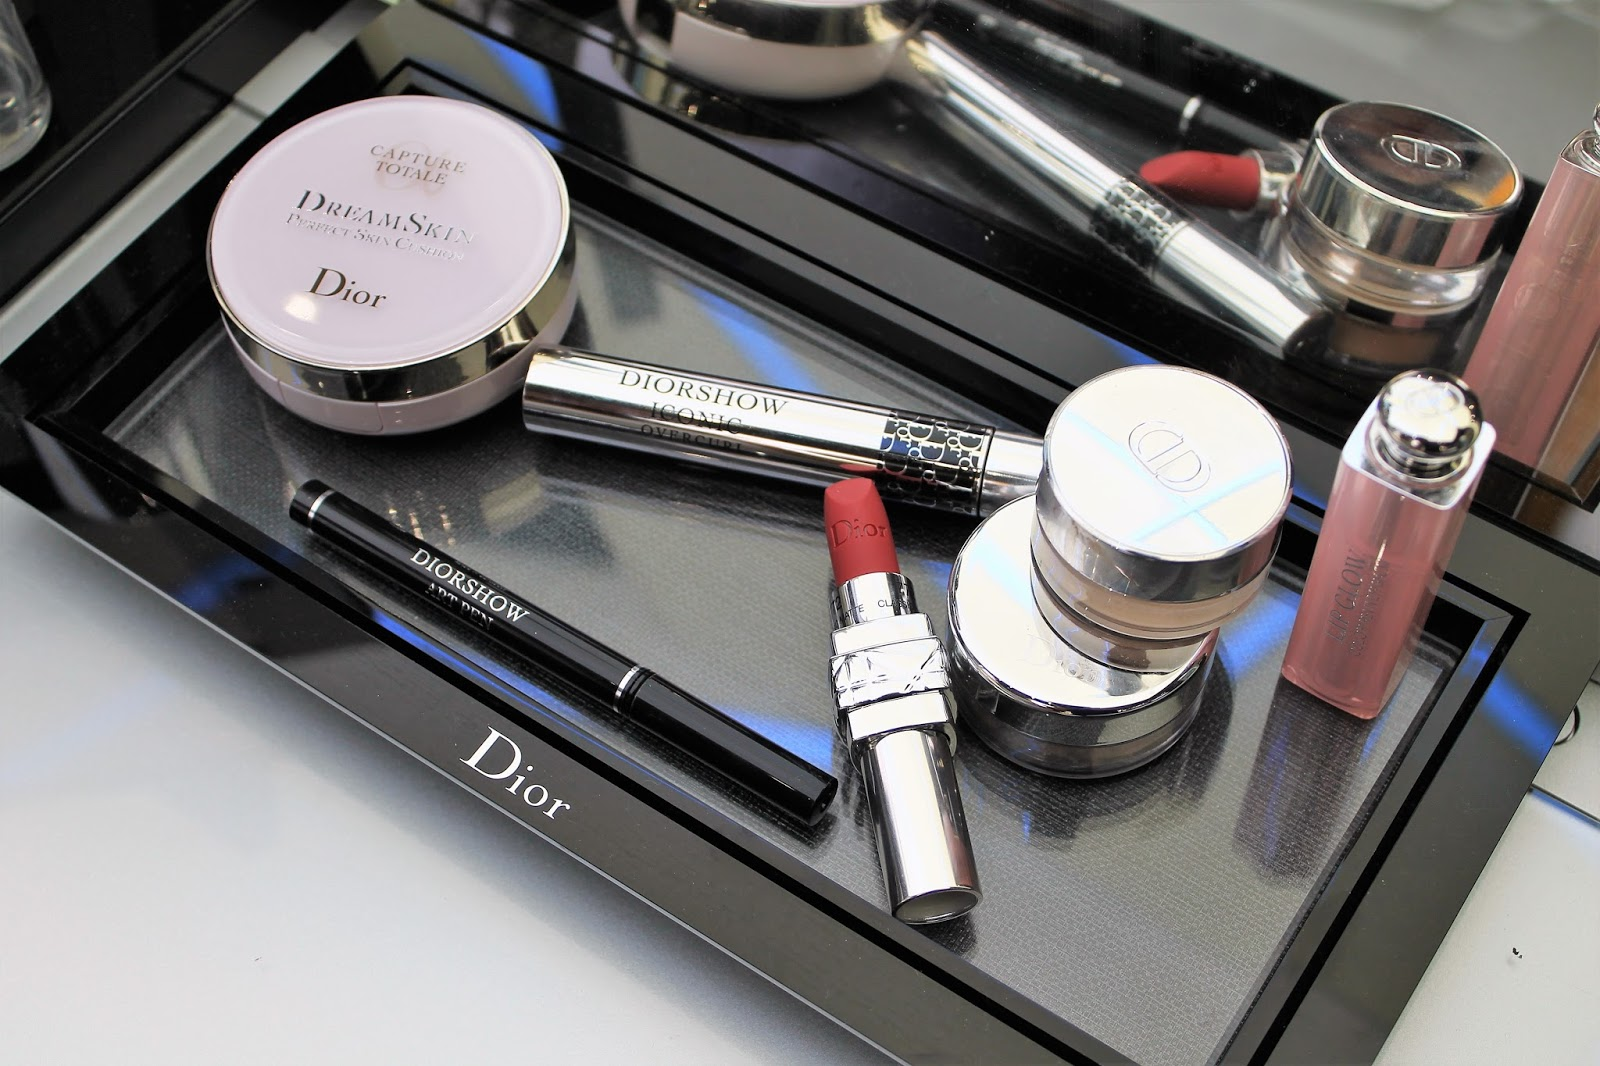 Dior makeup make up maquillage leçon parly 2 cours ambassadeurParly2 boutique nouvelle inauguration corner shop particulière mua muaddict dreamskin cushion rosy glow mascara diorshow overcurl mise en beauté soin le chesnay les gommettes de melo gommette collection privée backstages diorshow